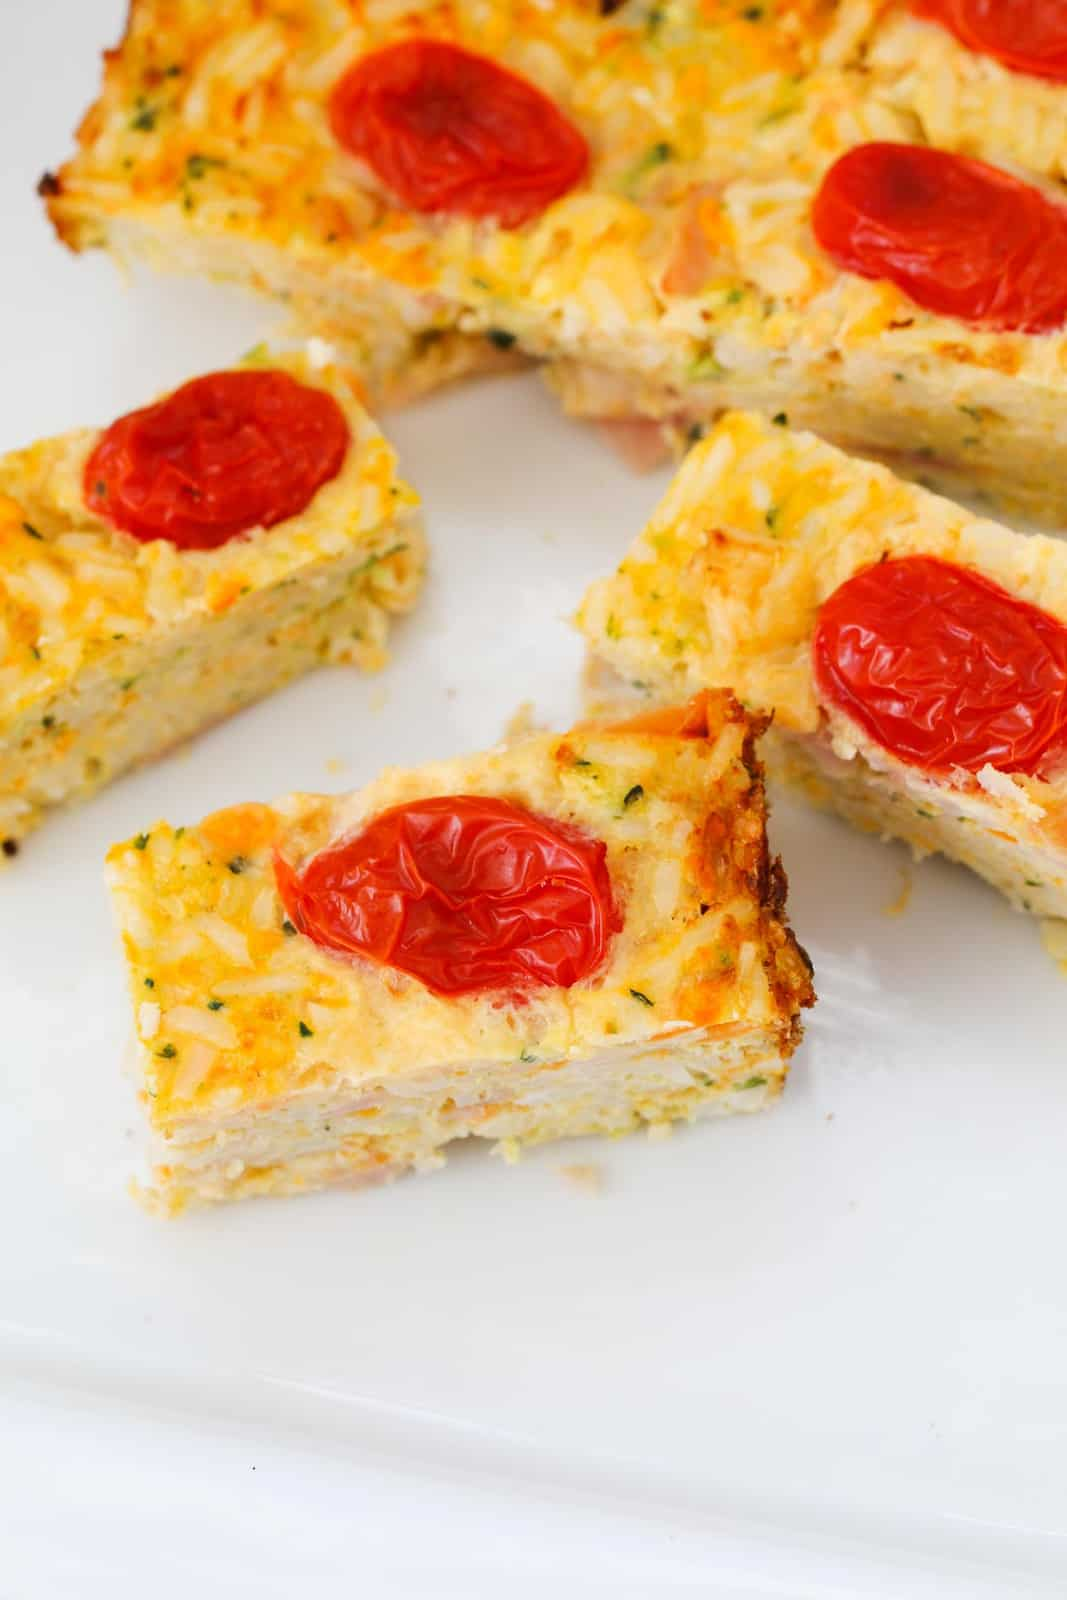 An overhead shot of cherry tomatoes on top of a golden vegetable bake.